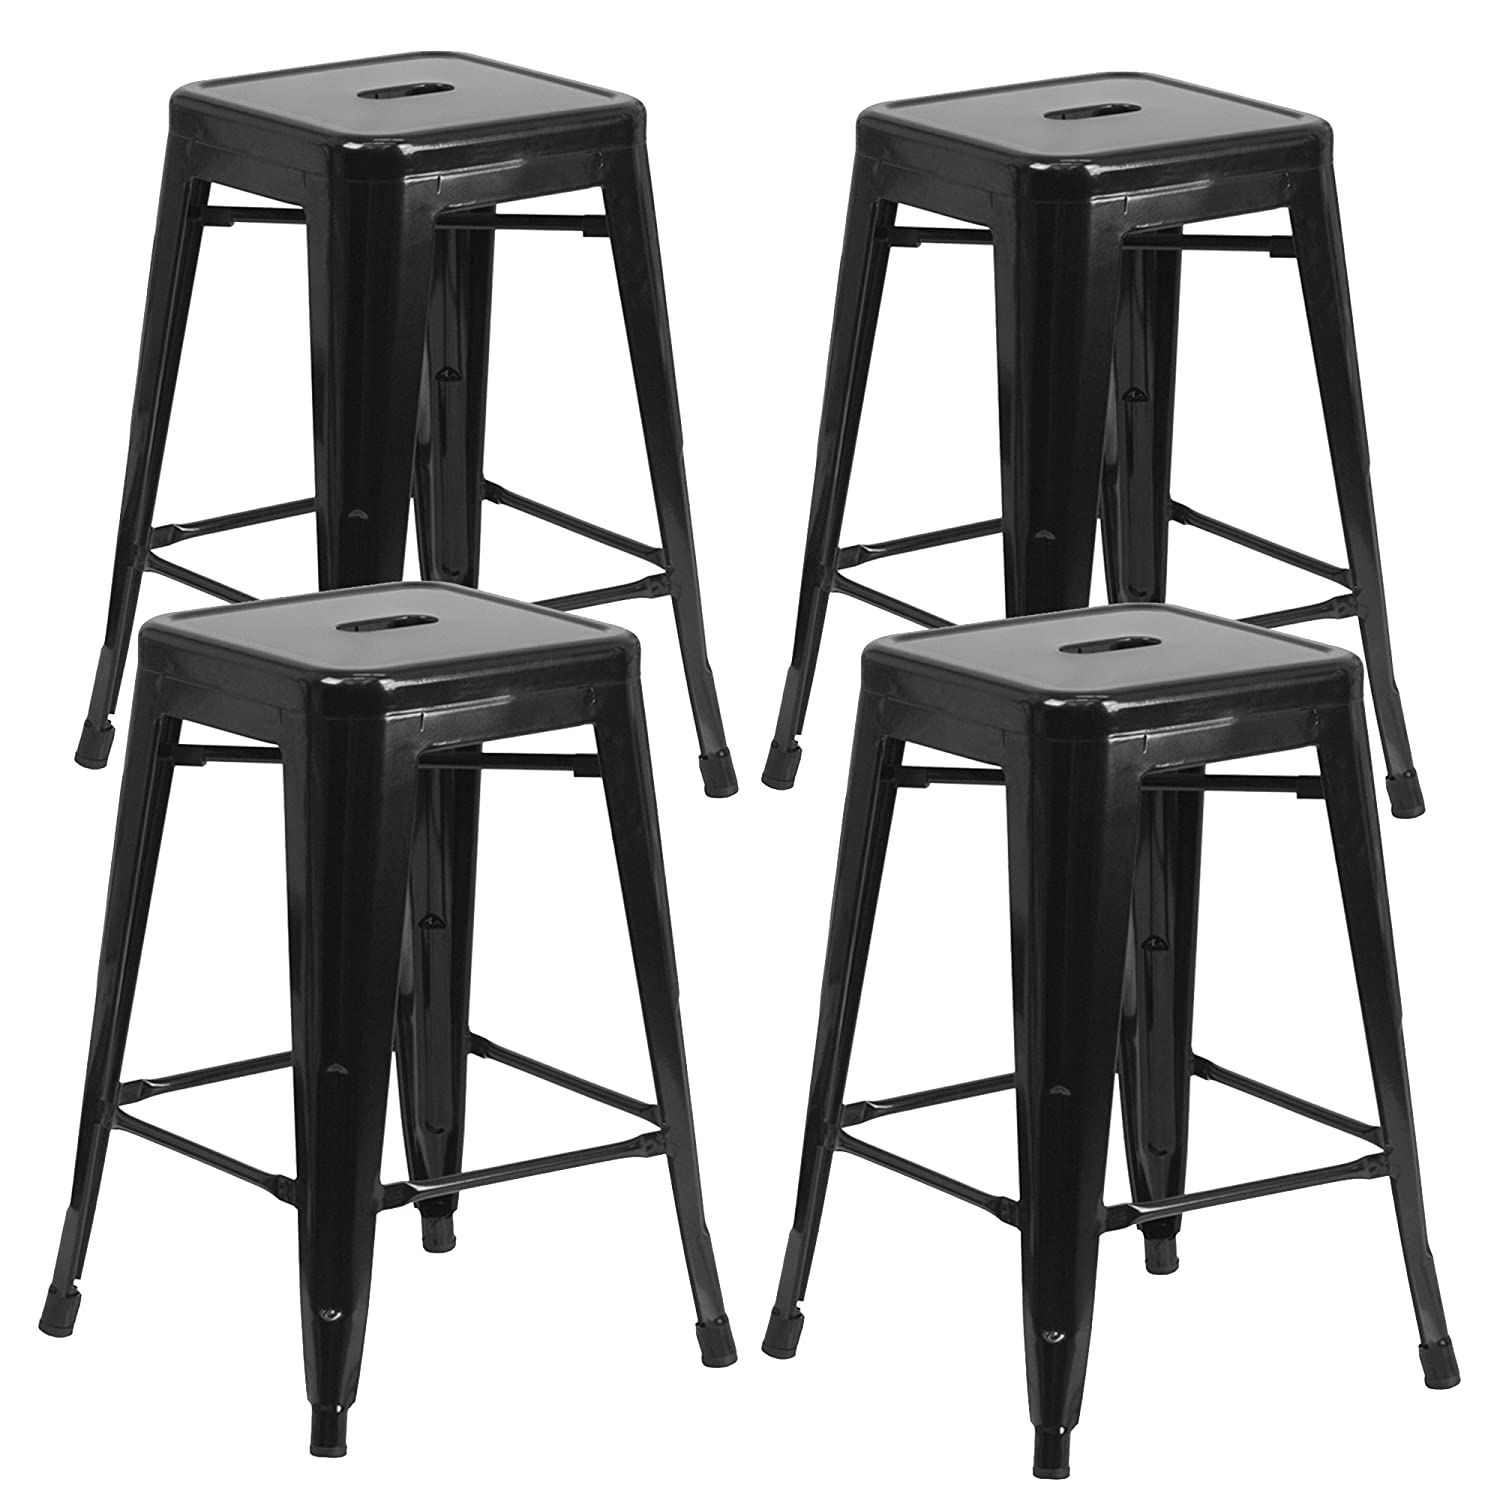 Vogue Furniture Direct 24 High Backless Black Metal Barstool Indoor-oudoor Counter Height Stool with Square Seat, Set of 4,